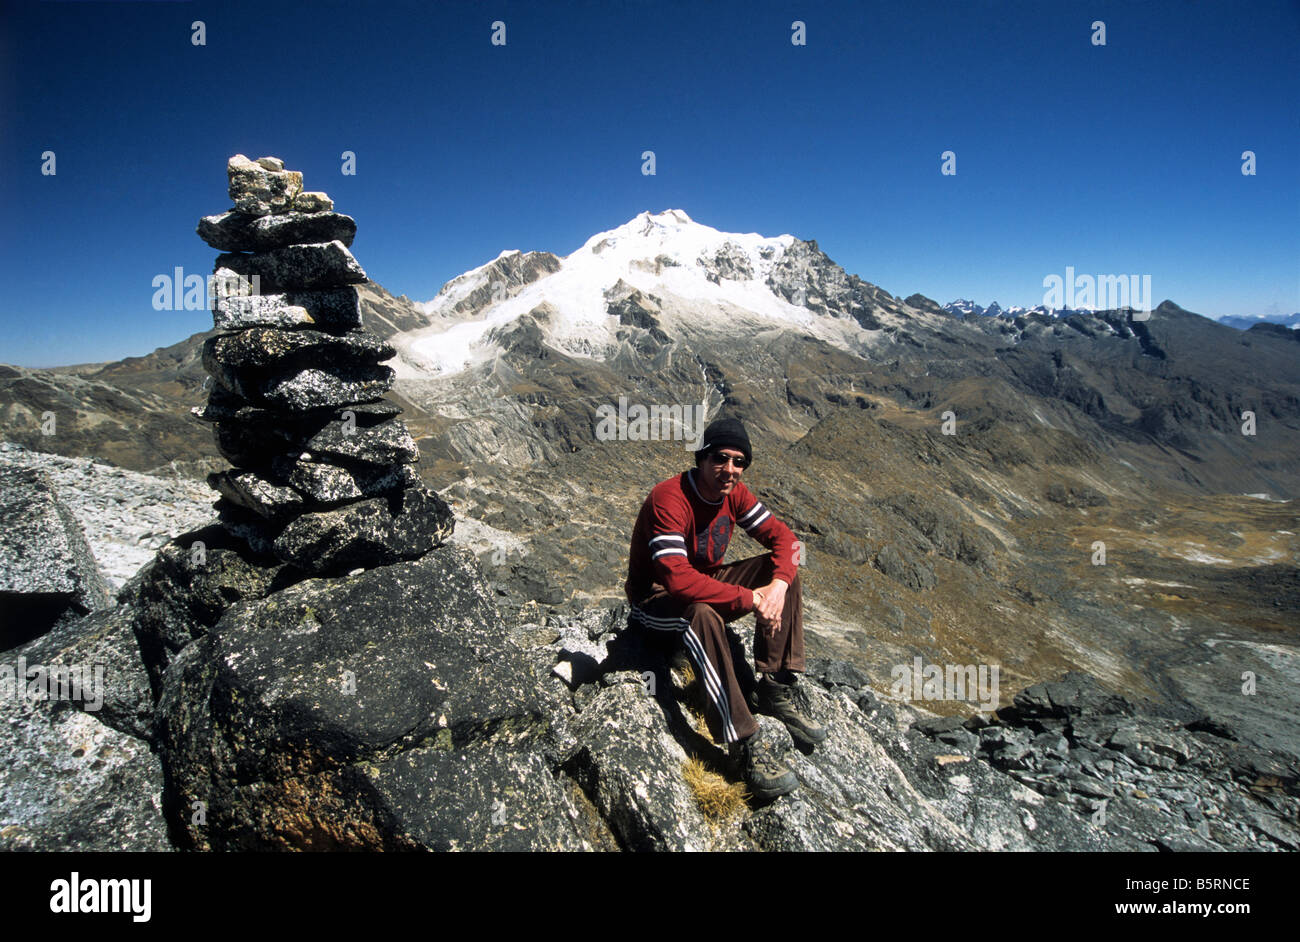 Trekker and cairn, Mount Huayna Potosi in background, Cordillera Real, Bolivia Stock Photo